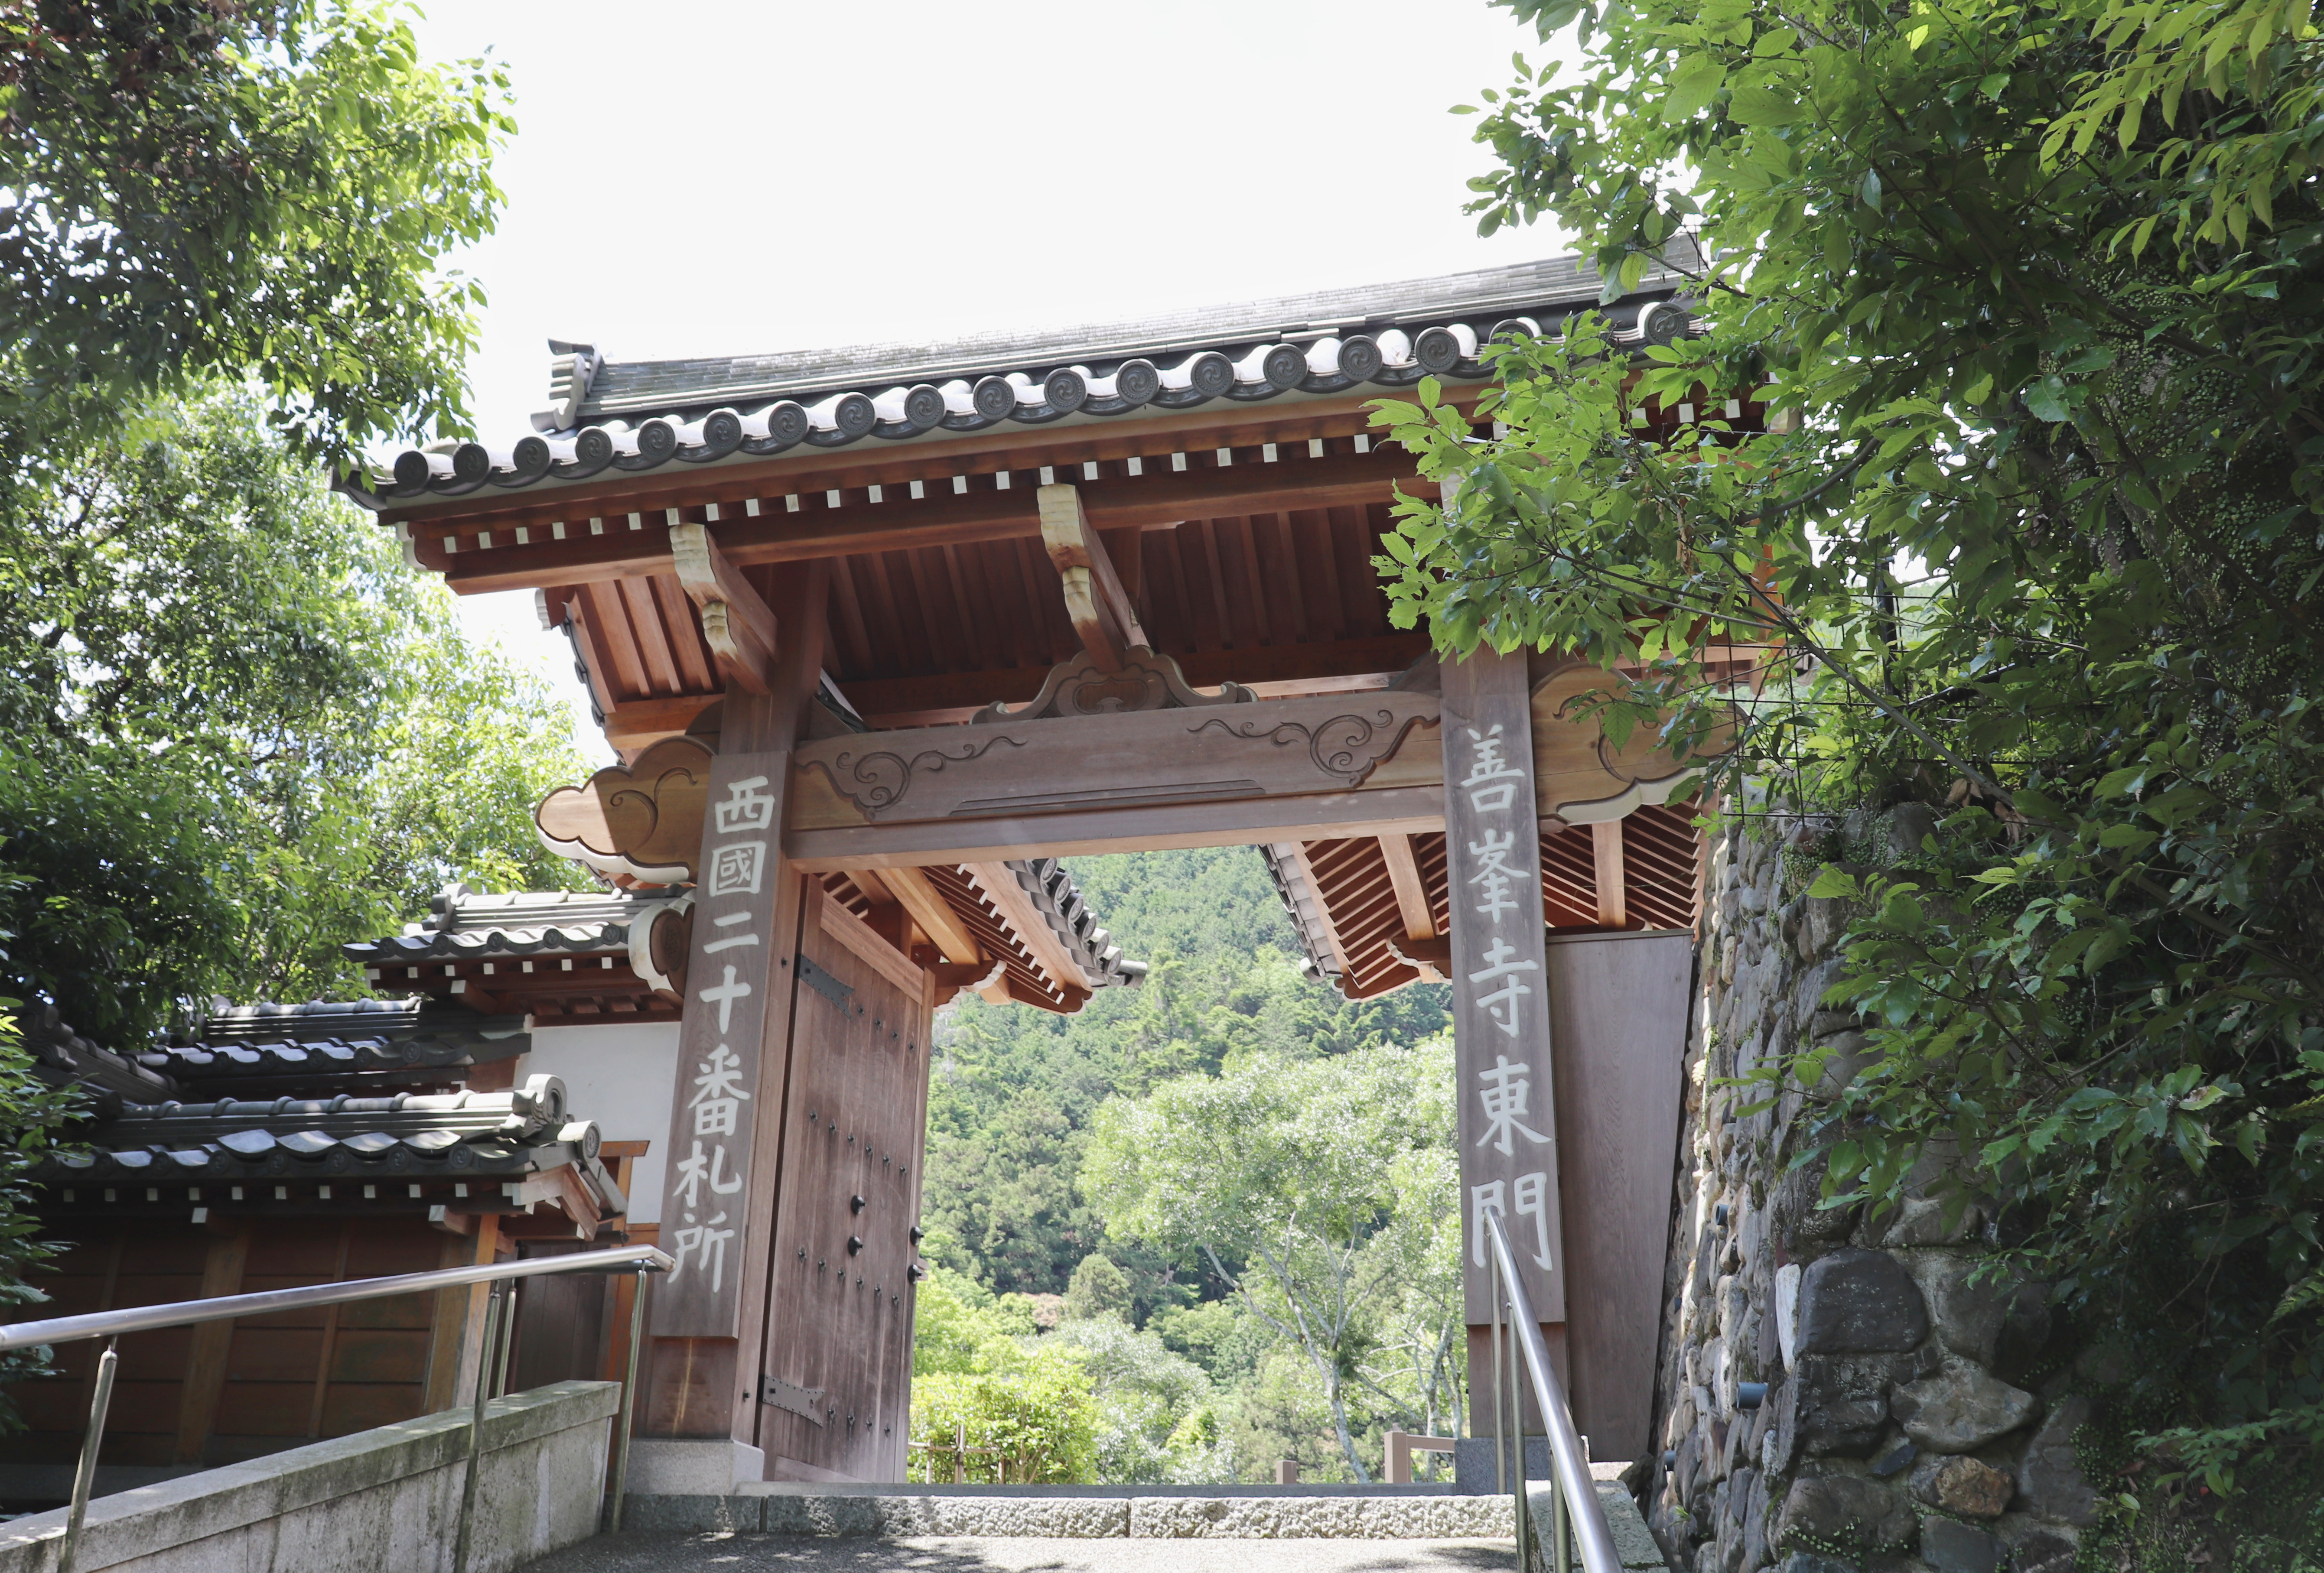 first wooden gate of Yoshiminedera temple